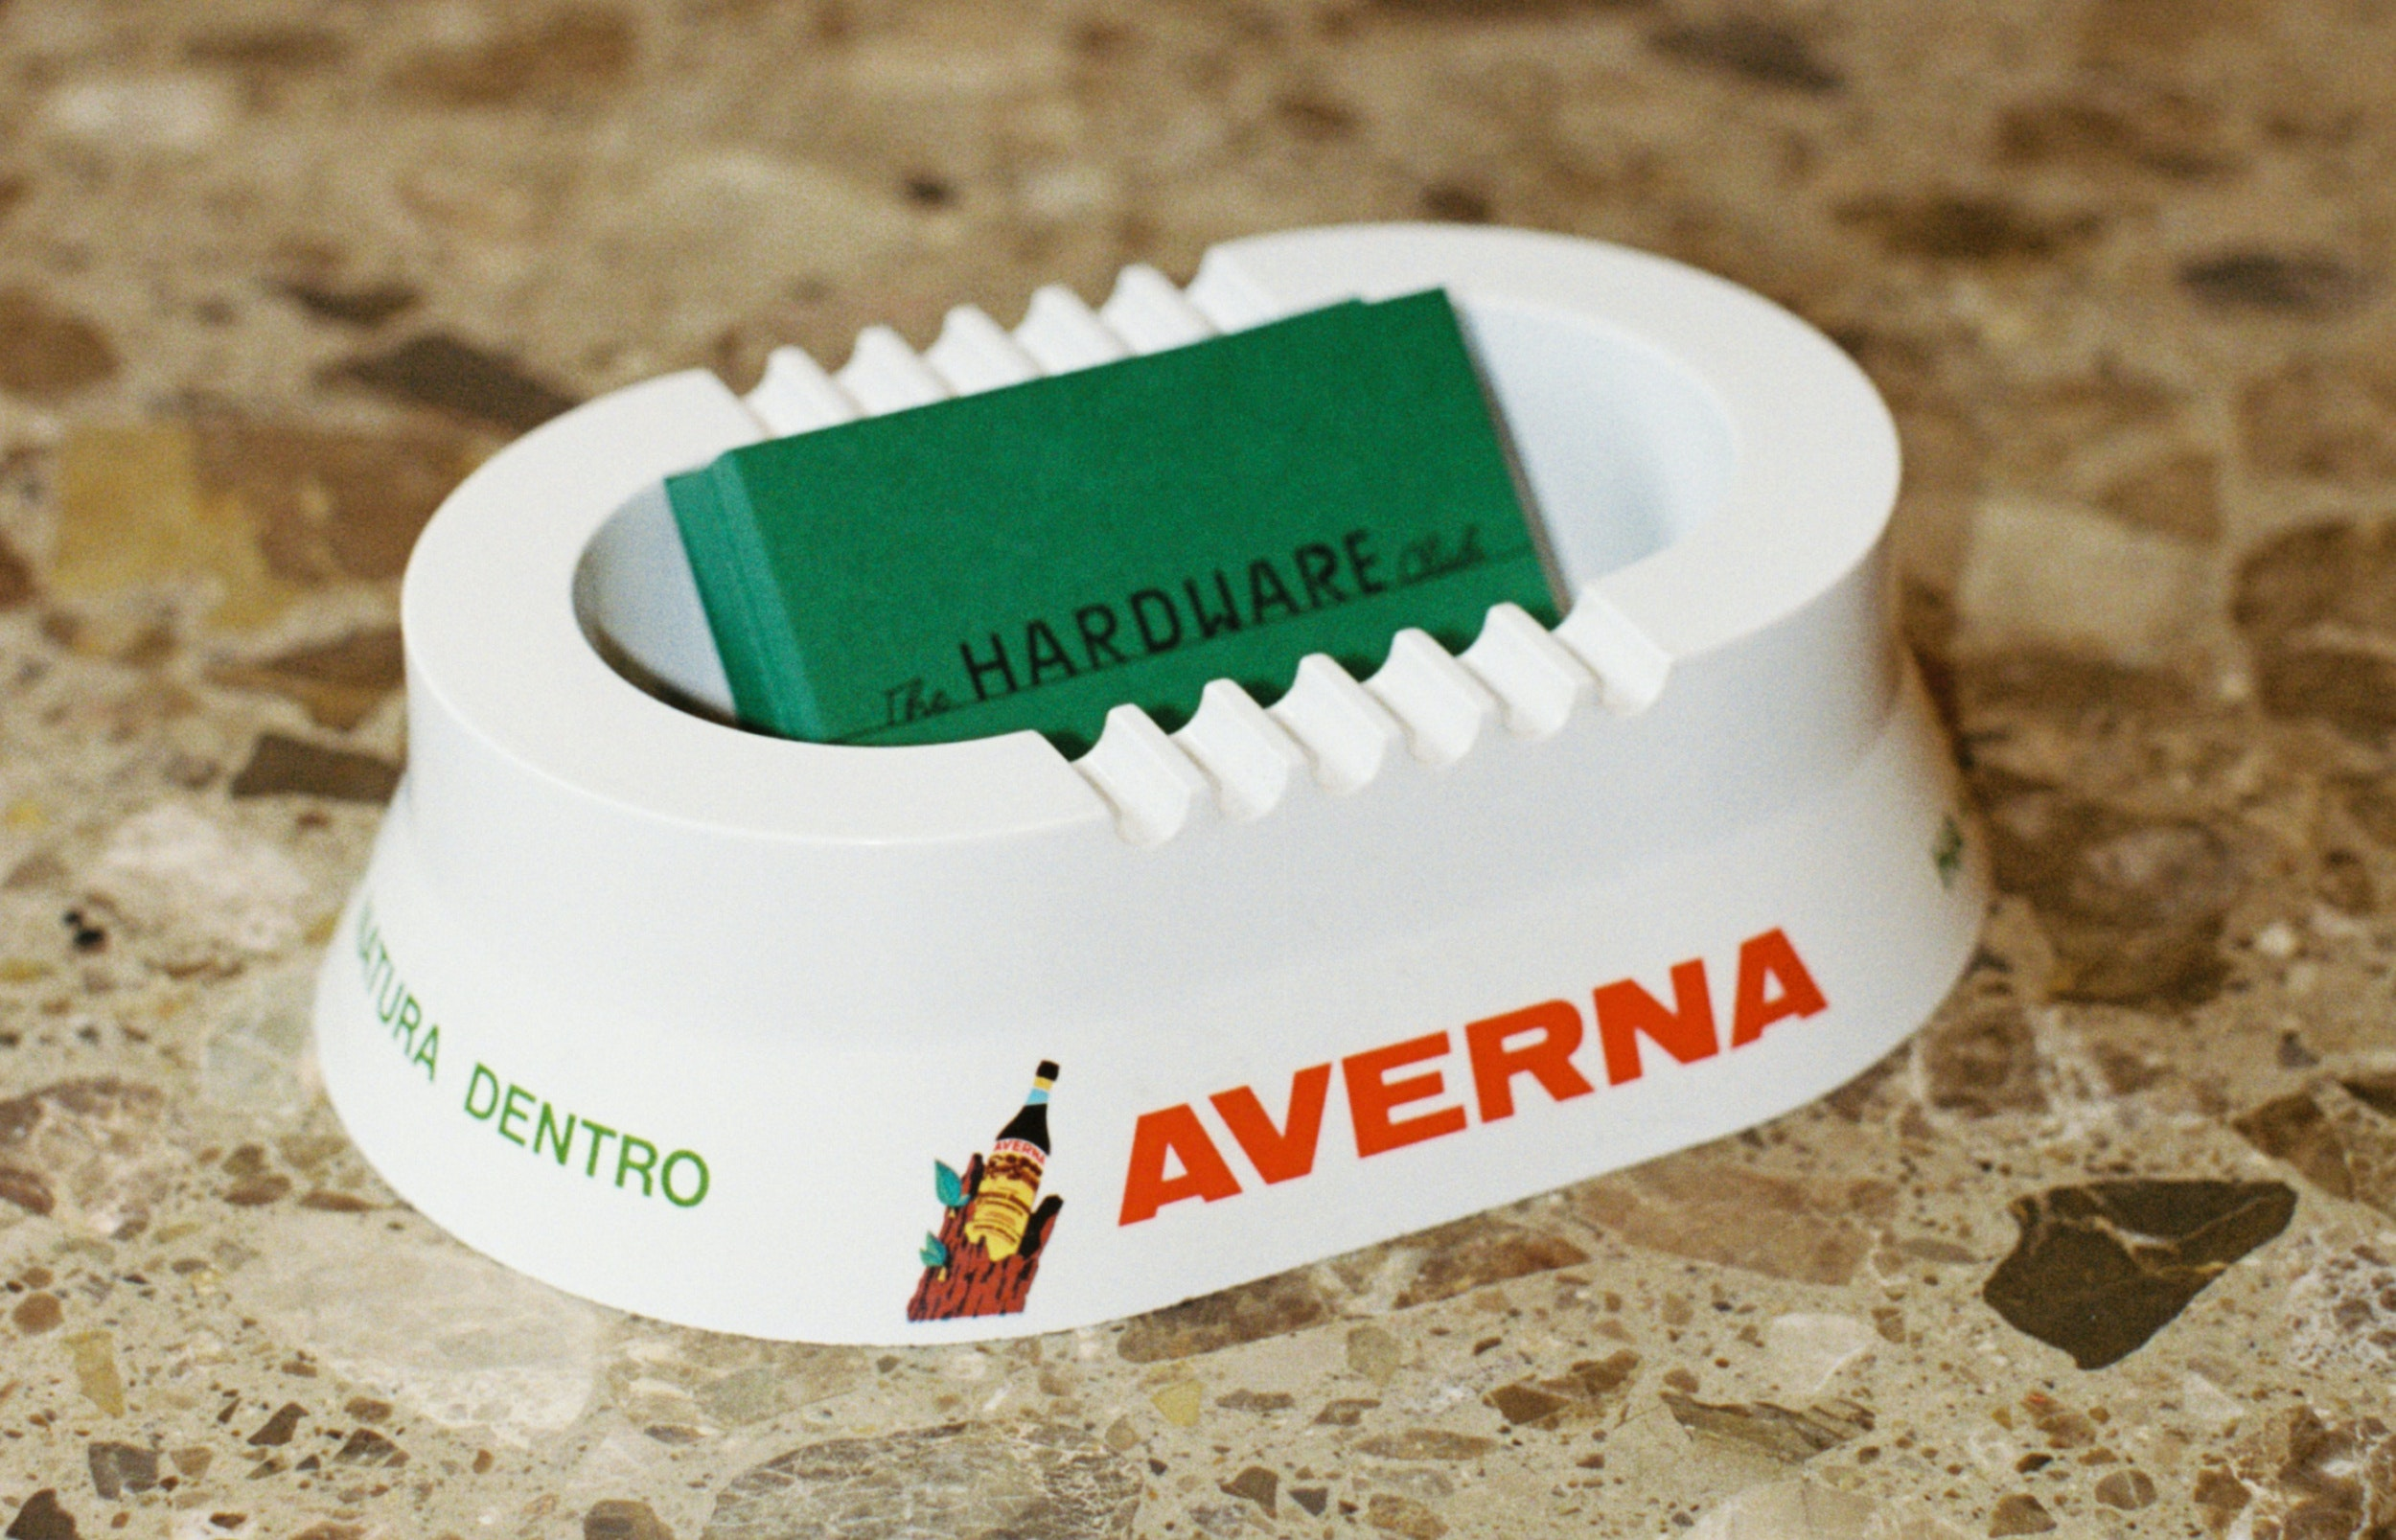 The Hardware Club business card by More Studio placed in a vintage Averna ashtray